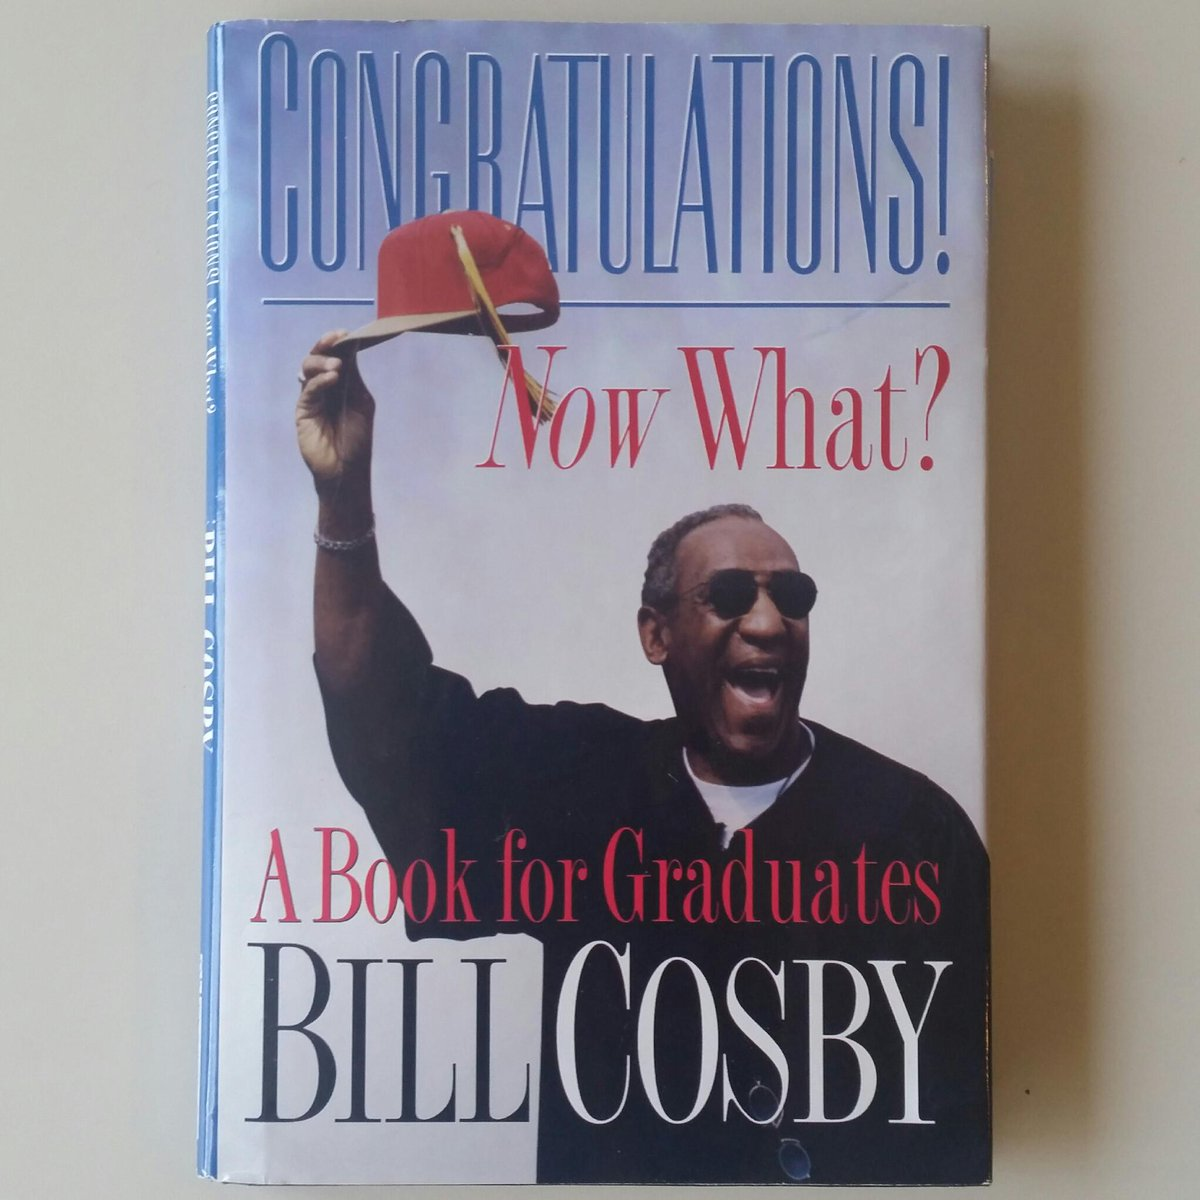 This insane excerpt (note the chapter title) from Bill Cosby's 1999 grad advice book is kinda all we need to know http://t.co/D6TdtxkG0x